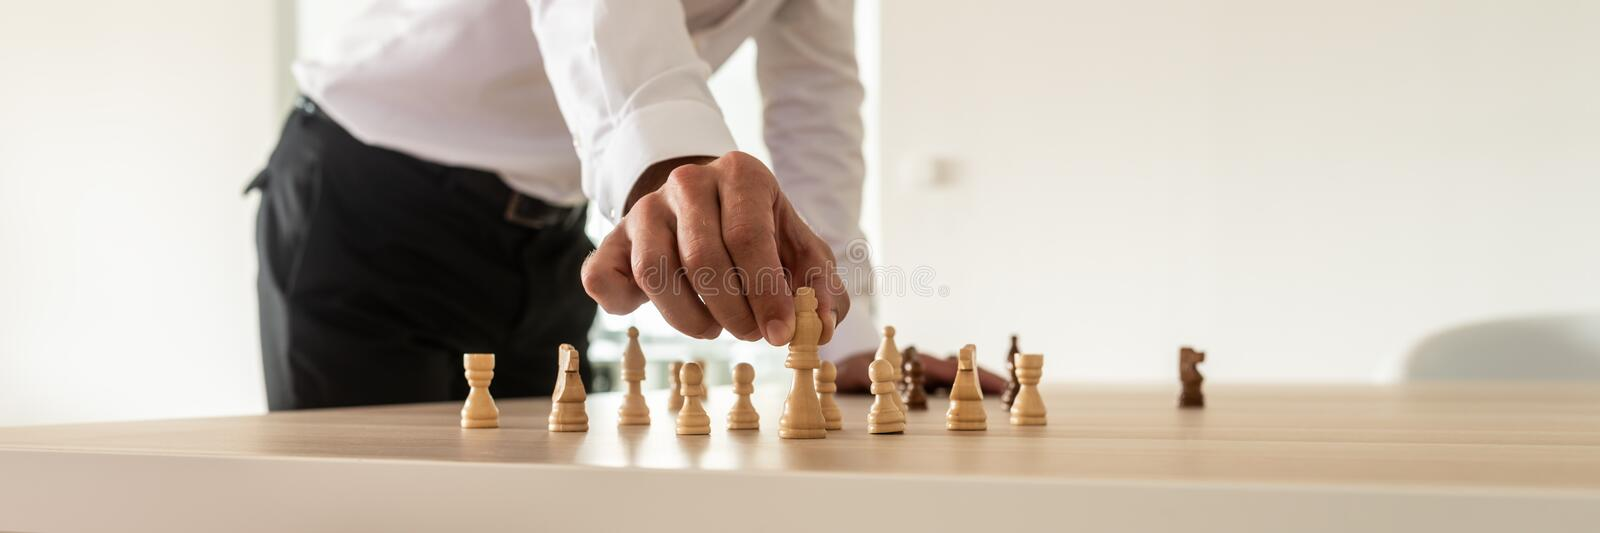 Business leadership concept royalty free stock photos